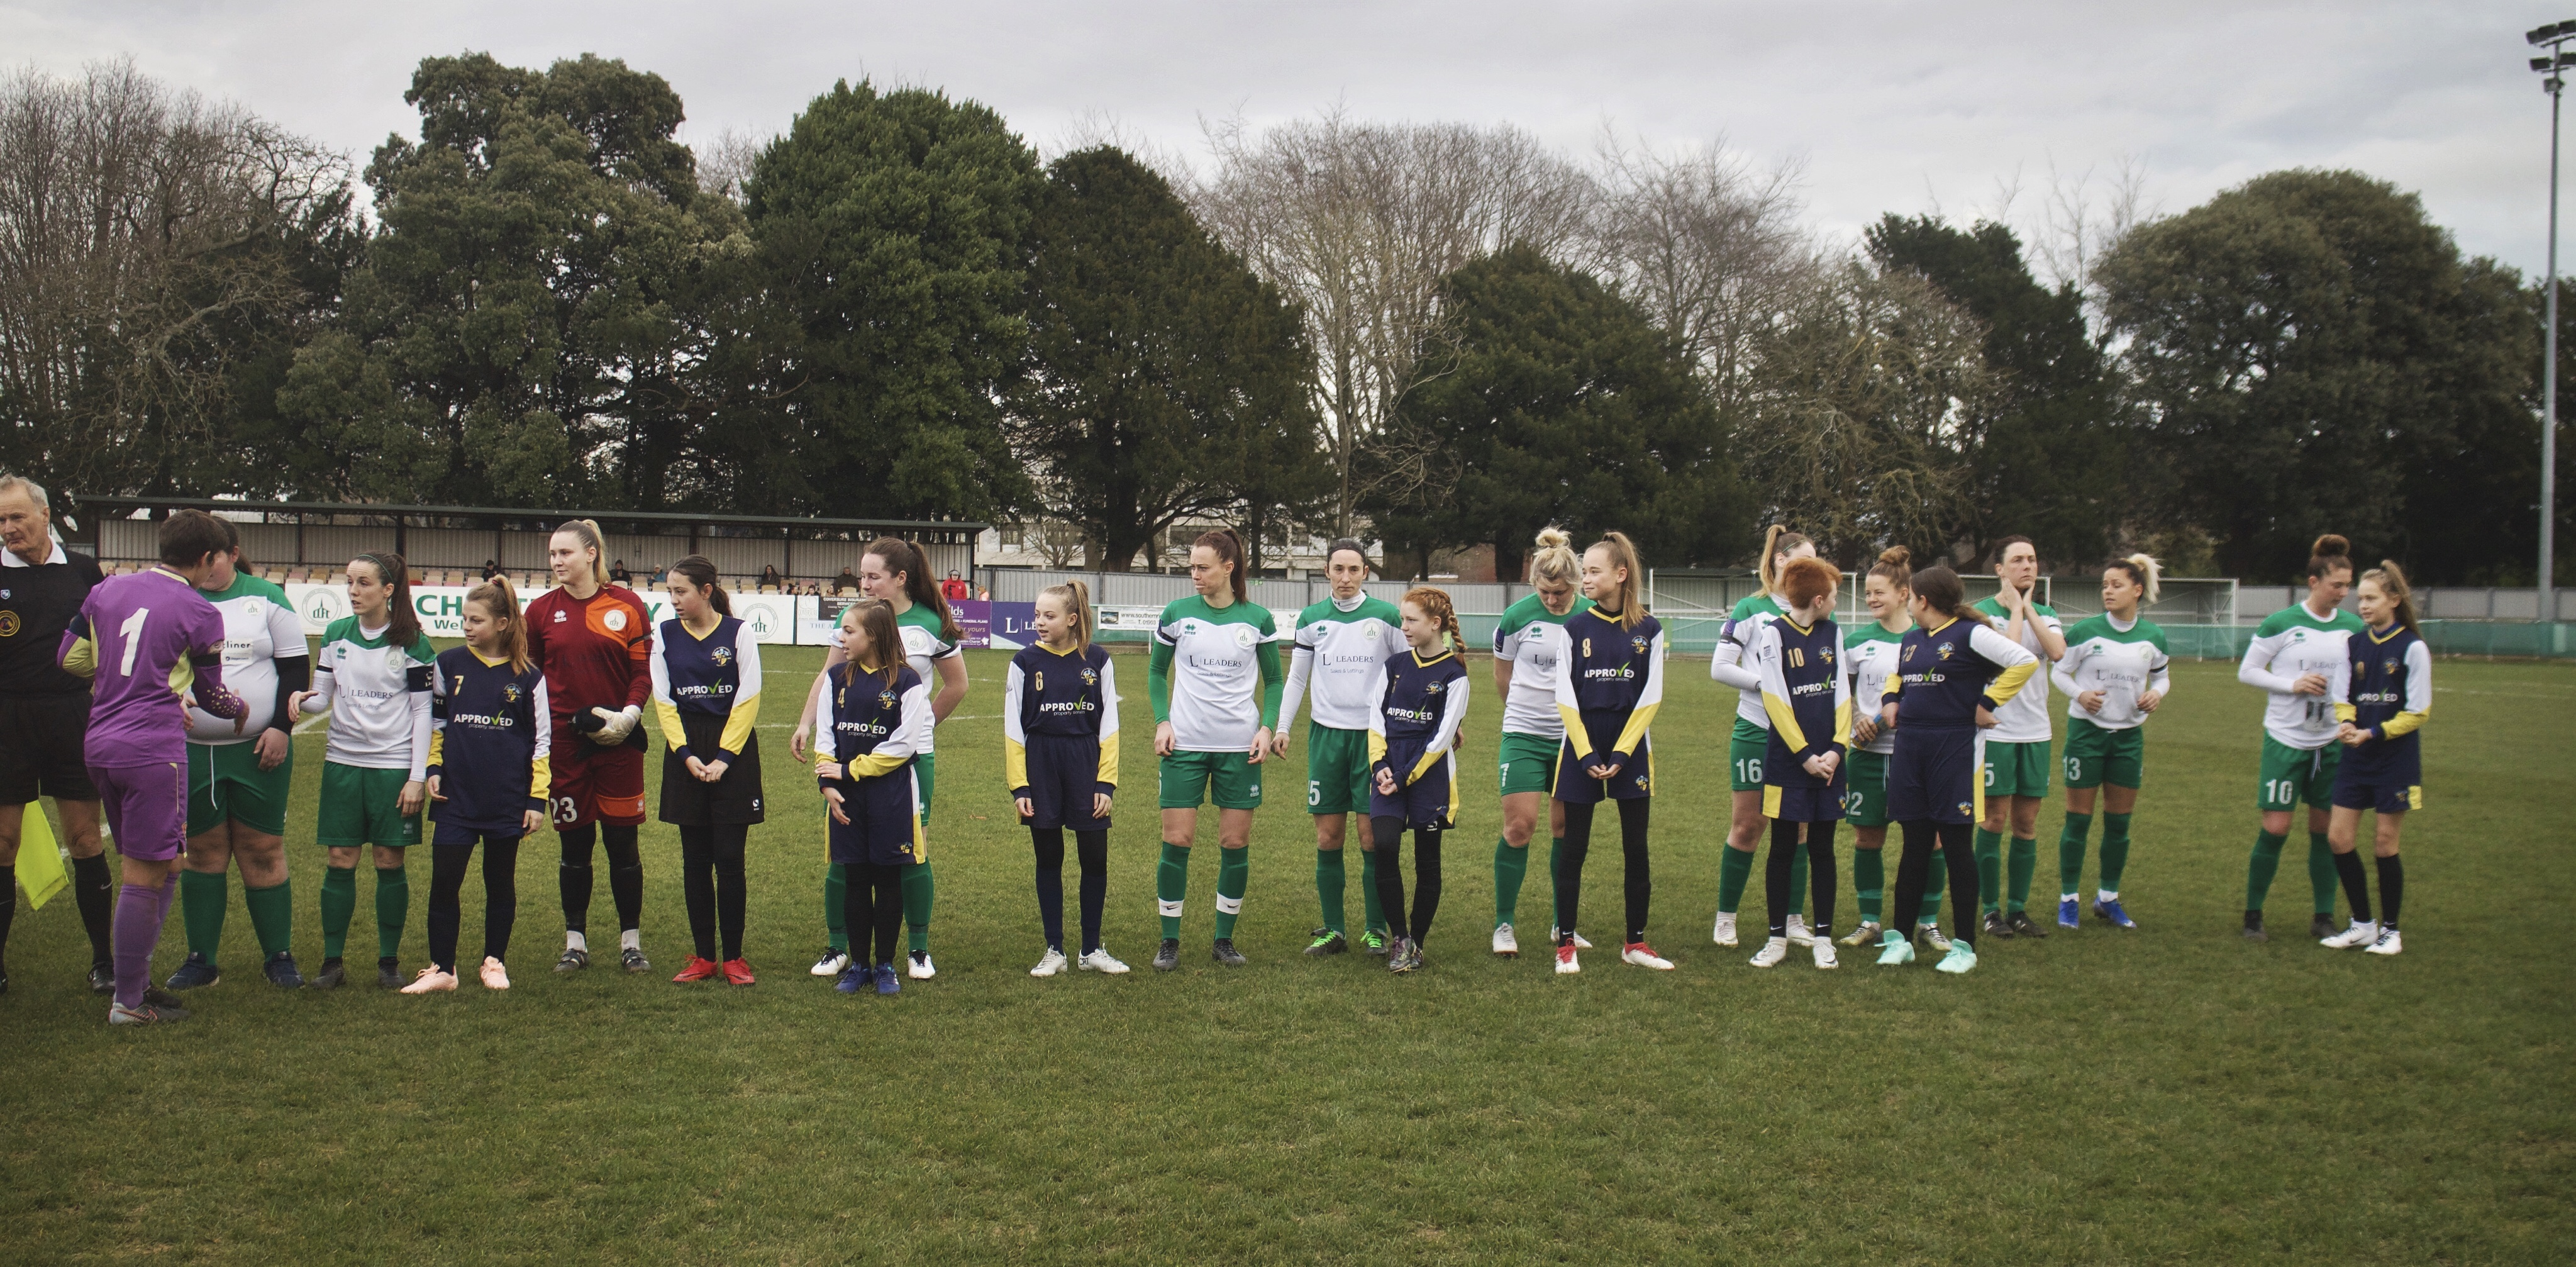 Havant & Waterlooville Girls with Chichester City Ladies prior to their National League tie against Coventry United.